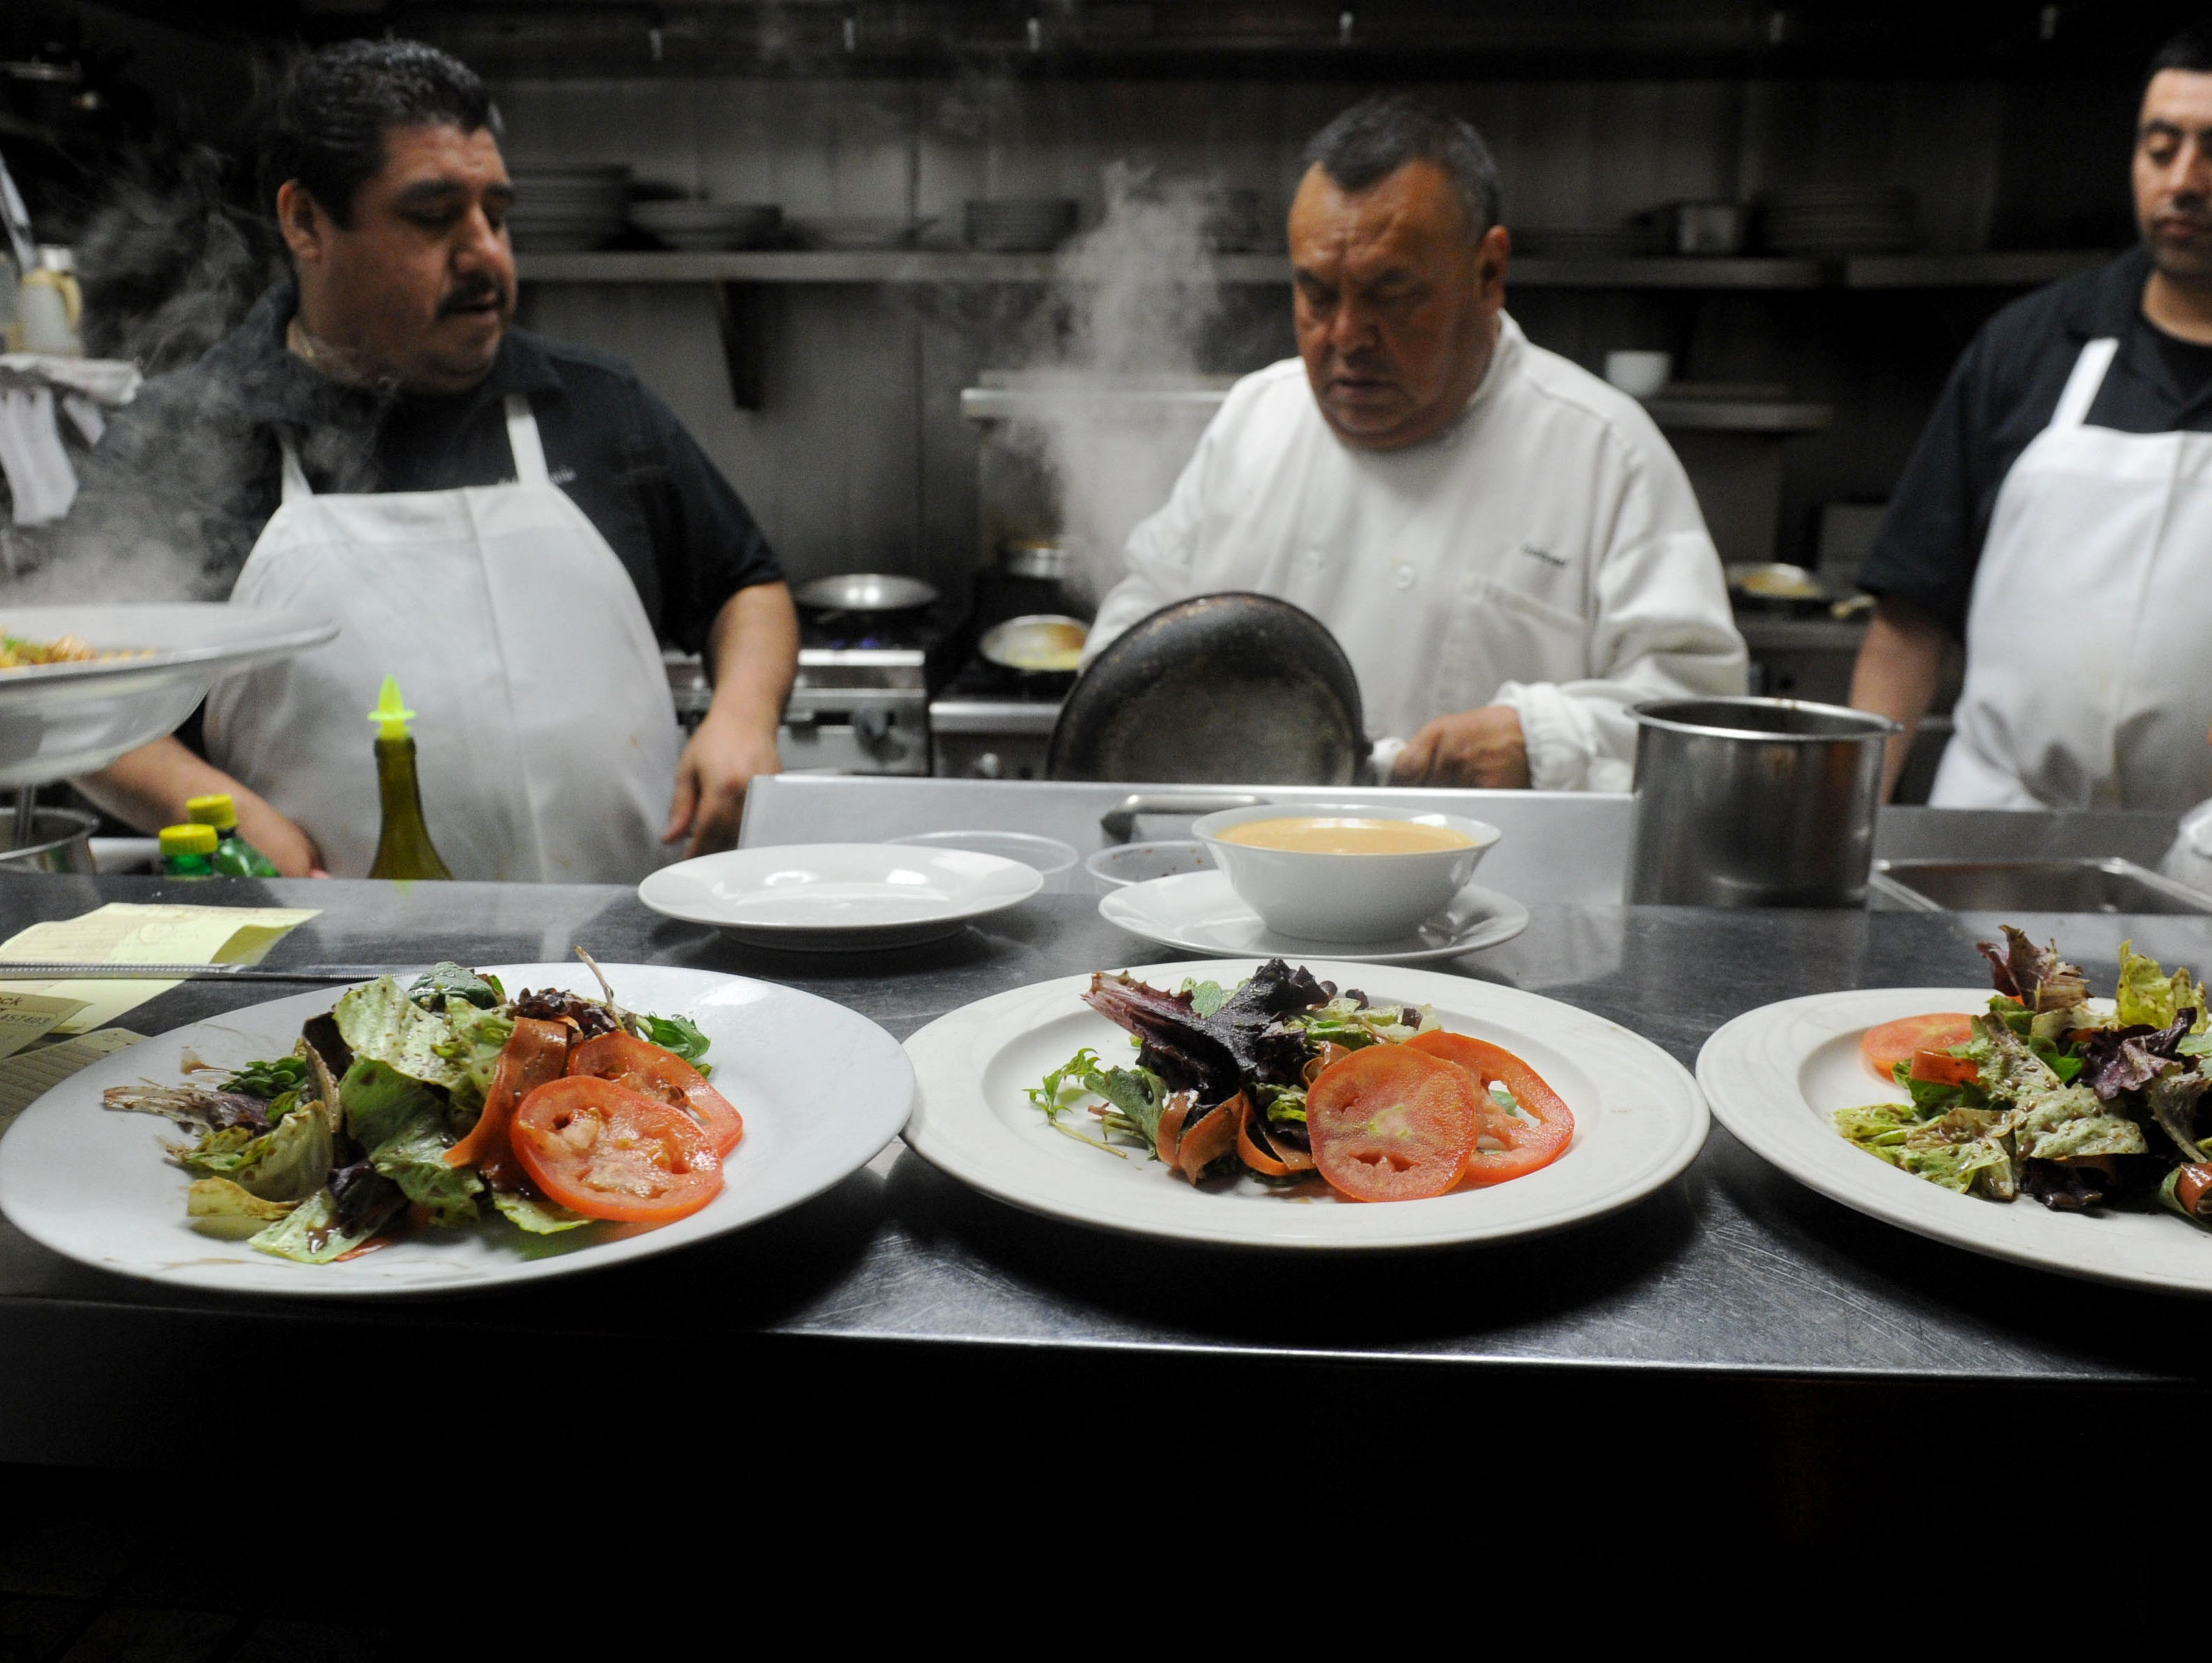 Augustine Resendiz, from left, Gabriel Navarrete and Luis Patino, cooks at Bistro 13 in Camarillo, prepare dishes for customers. The Italian-centered is owned by Giovanni Tromba.